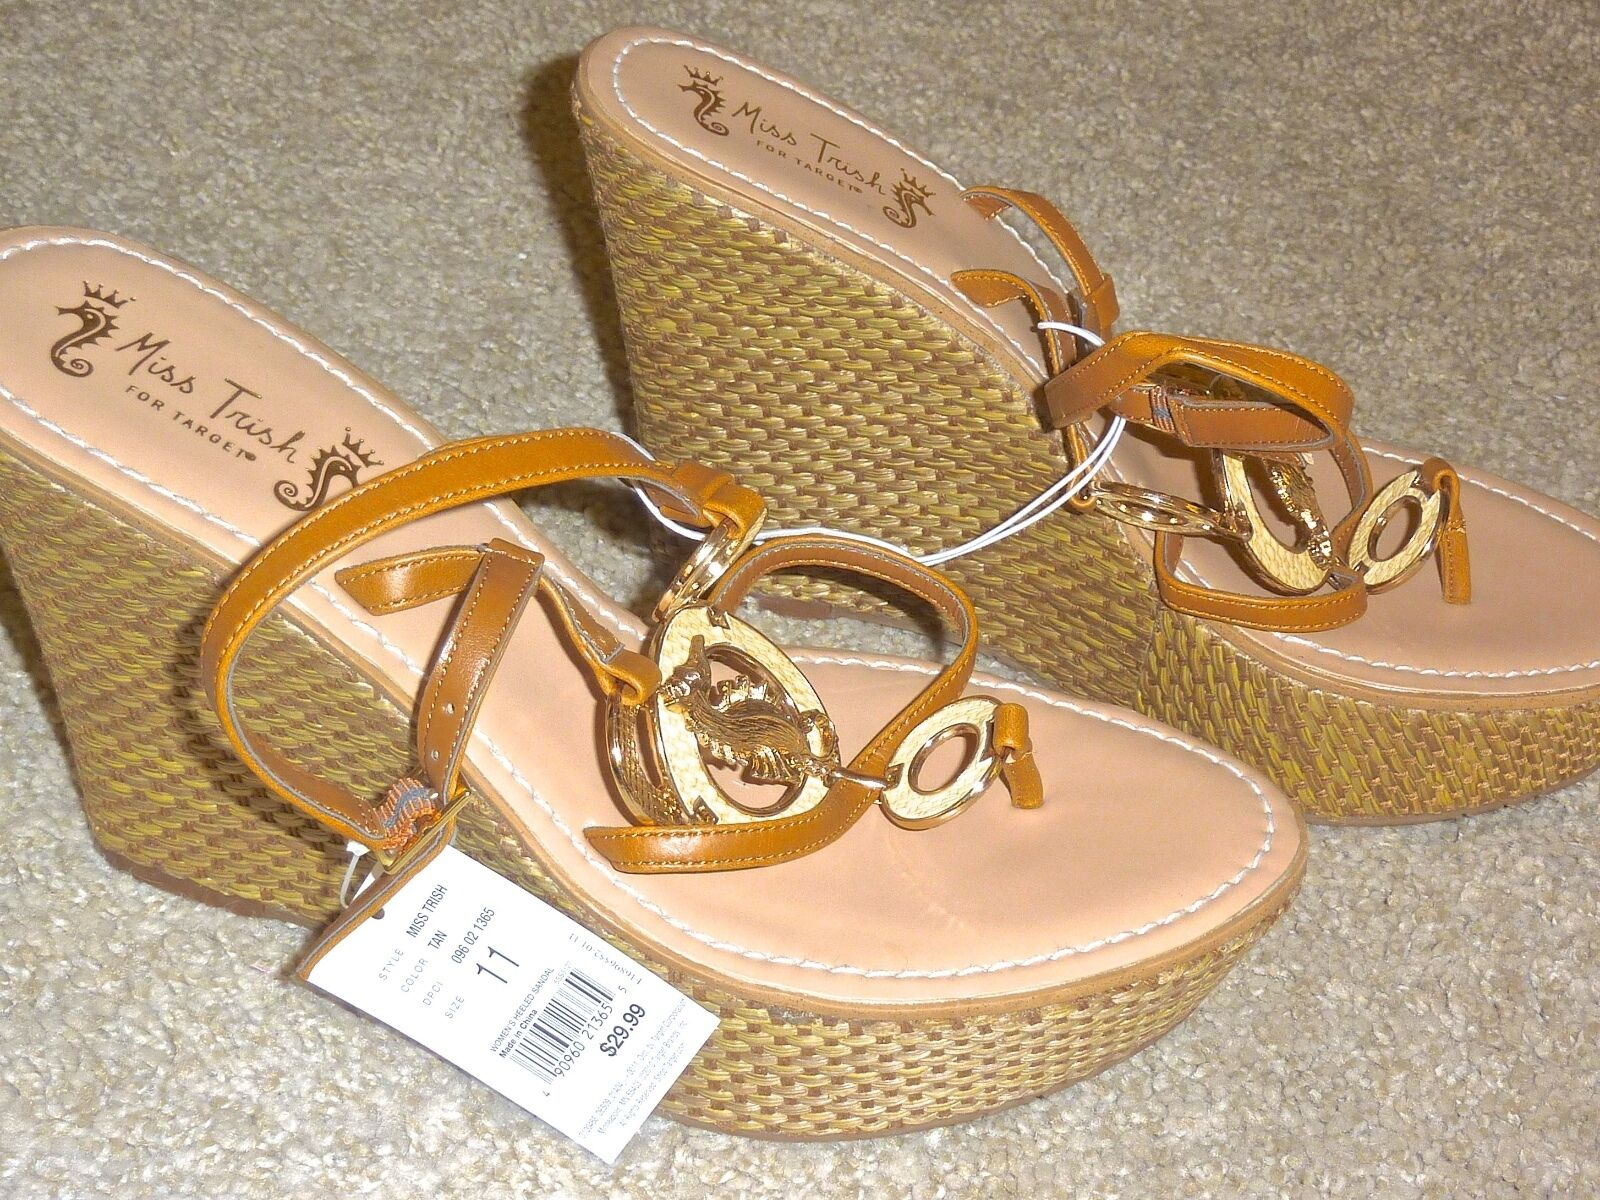 NEW Miss Trish Trish Miss Of Capri For Target Tan Seahorse Platform Wedge Sandals 11 ad3e61